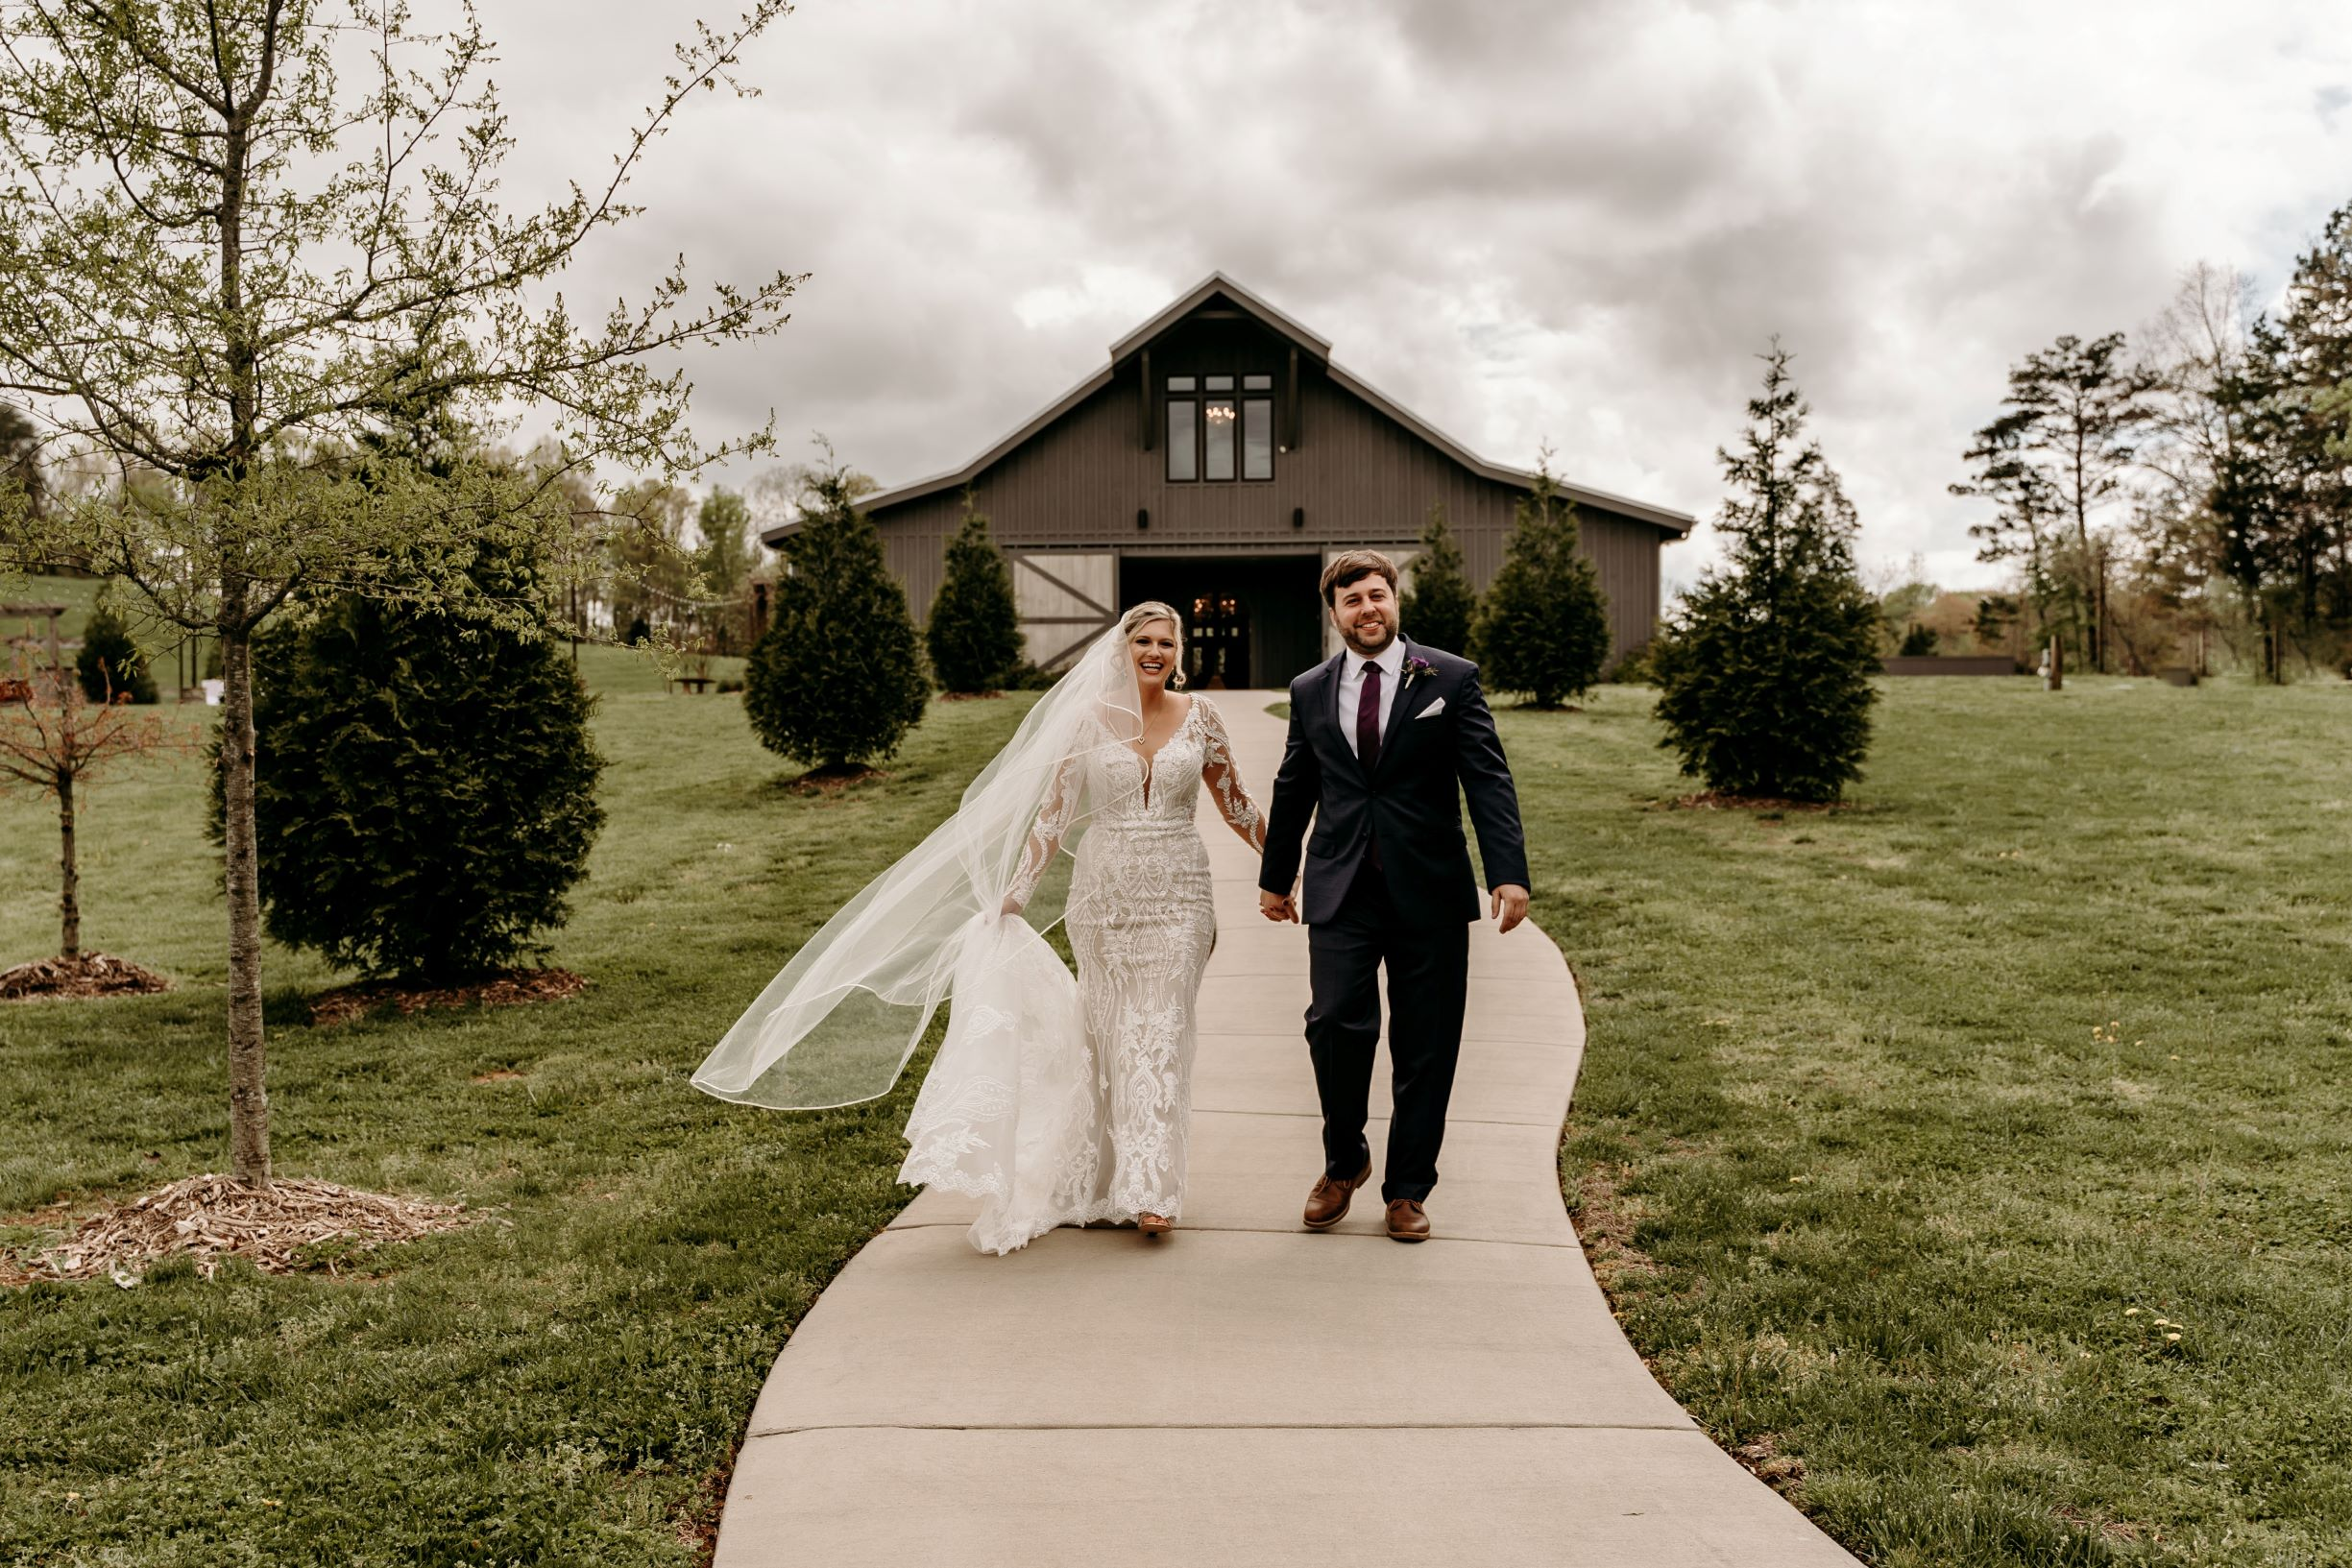 The Loft at Cherry Hill is another one of our newer Chattanooga wedding venues, boasting floor to ceiling windows that open up on the rolling hills of the Tennessee countryside for incredible views and natural light galore.